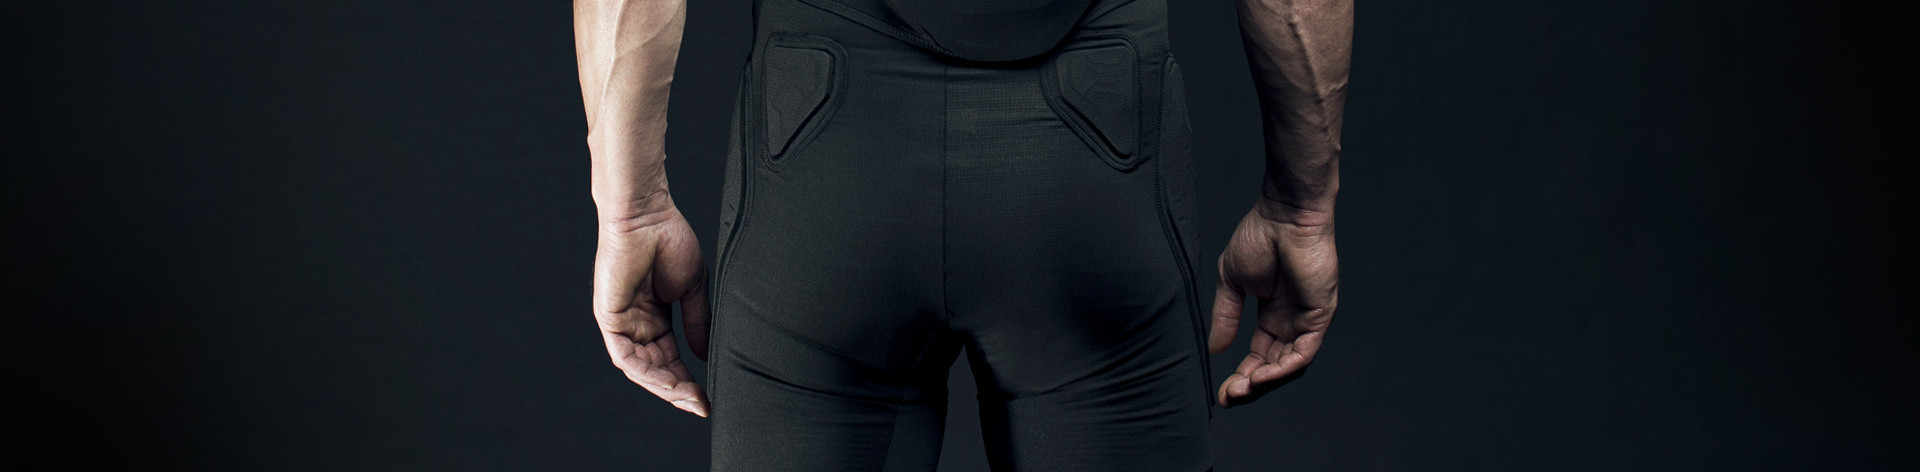 Dainese Bike protections